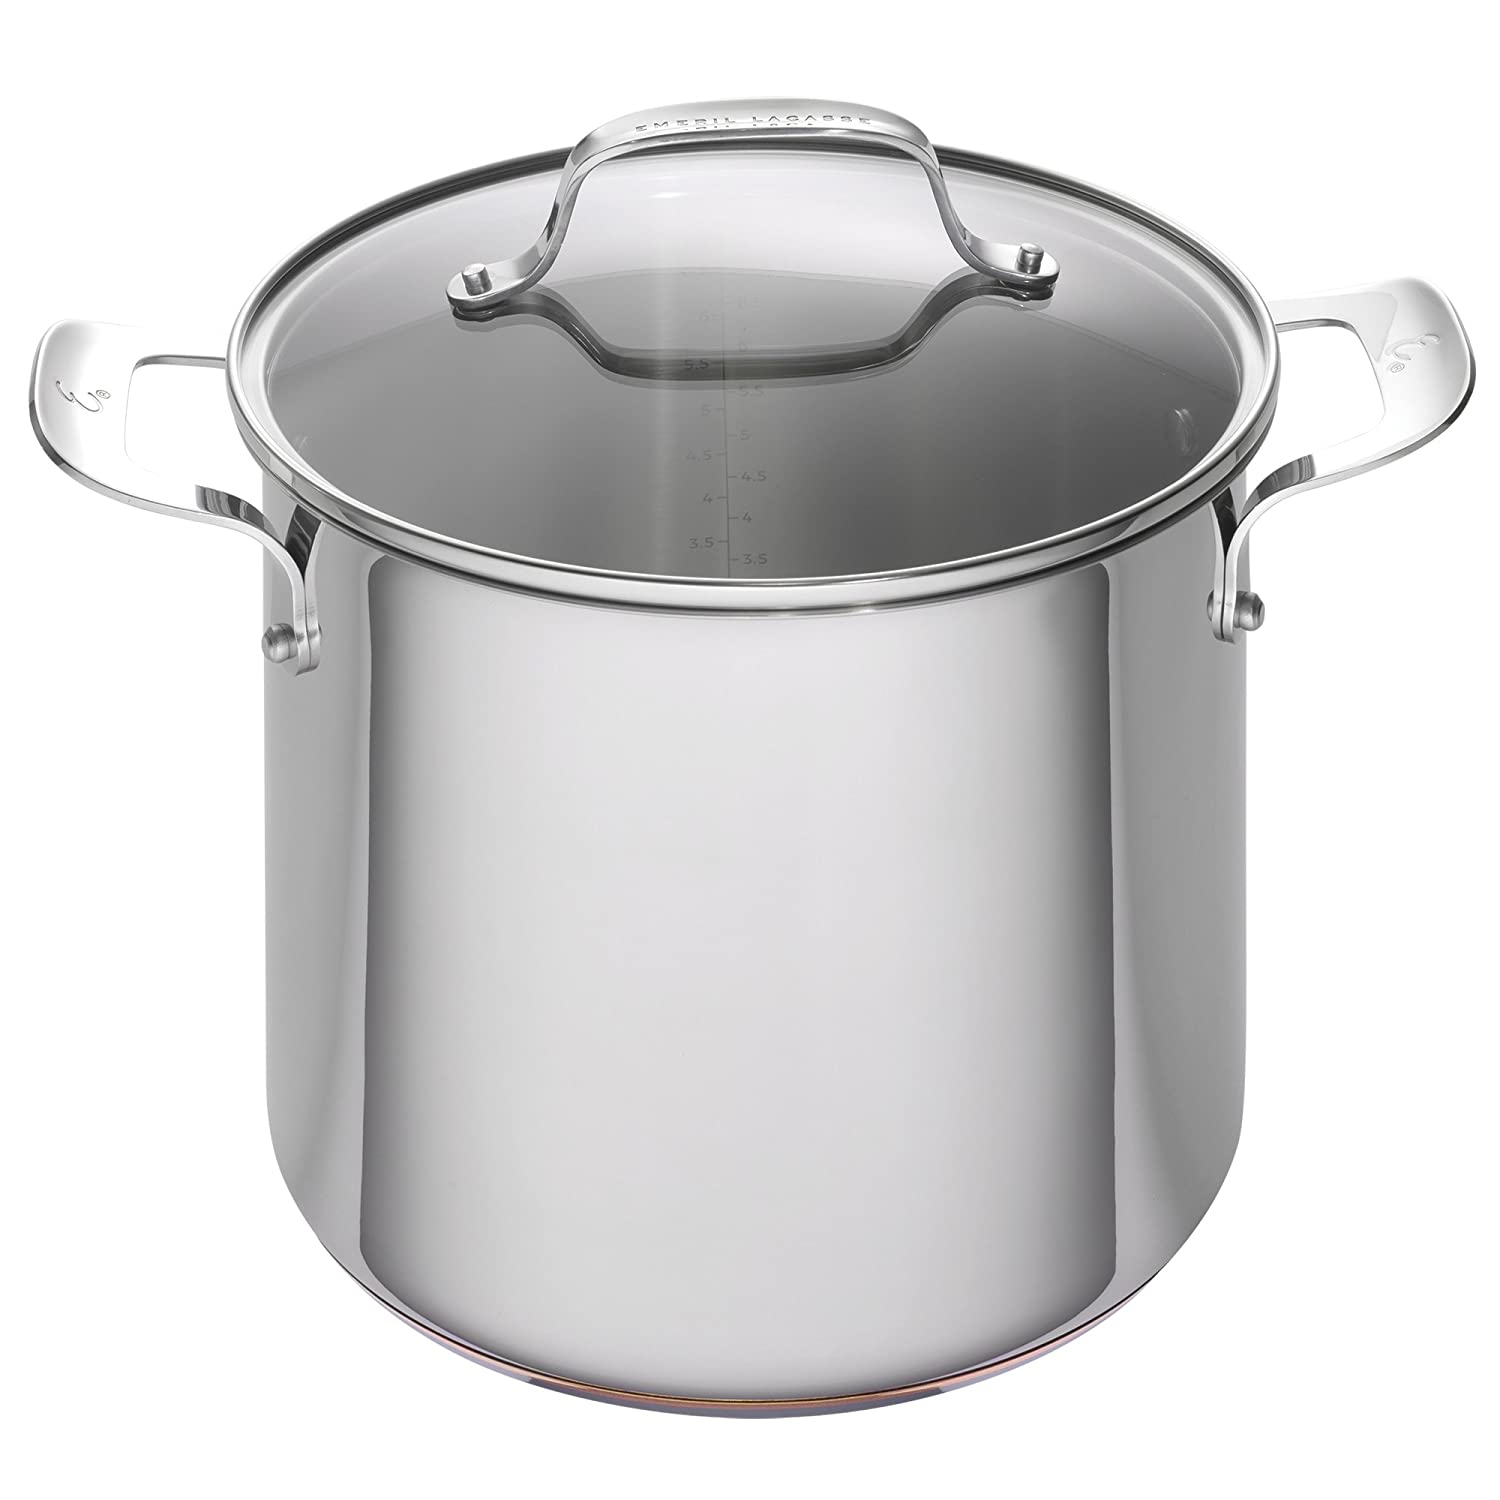 Emeril Lagasse Stainless Steel Copper Core Stock Pot, 8 quart,